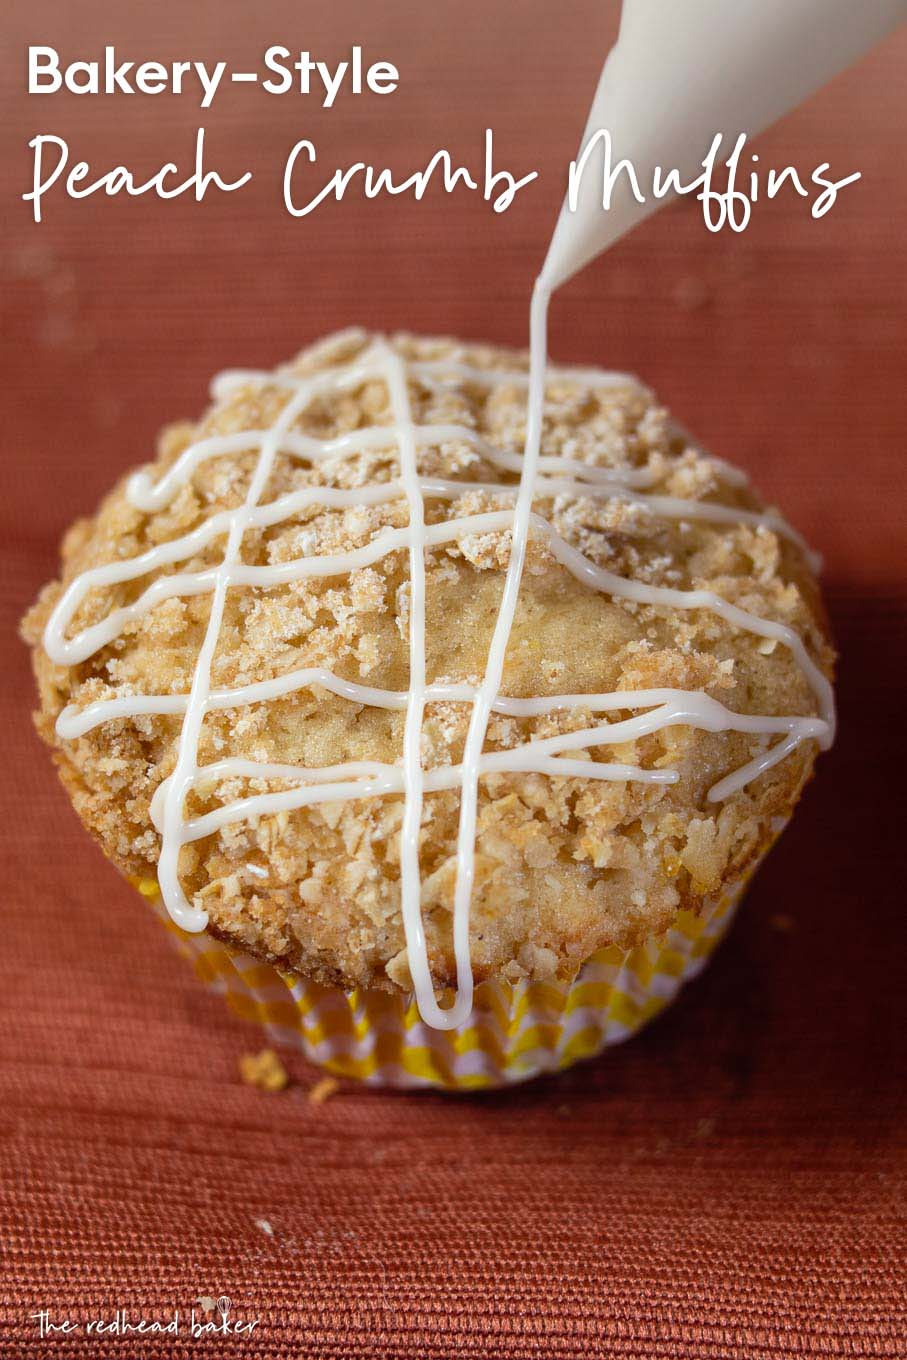 Icing being piped onto a bakery-style peach crumb muffin